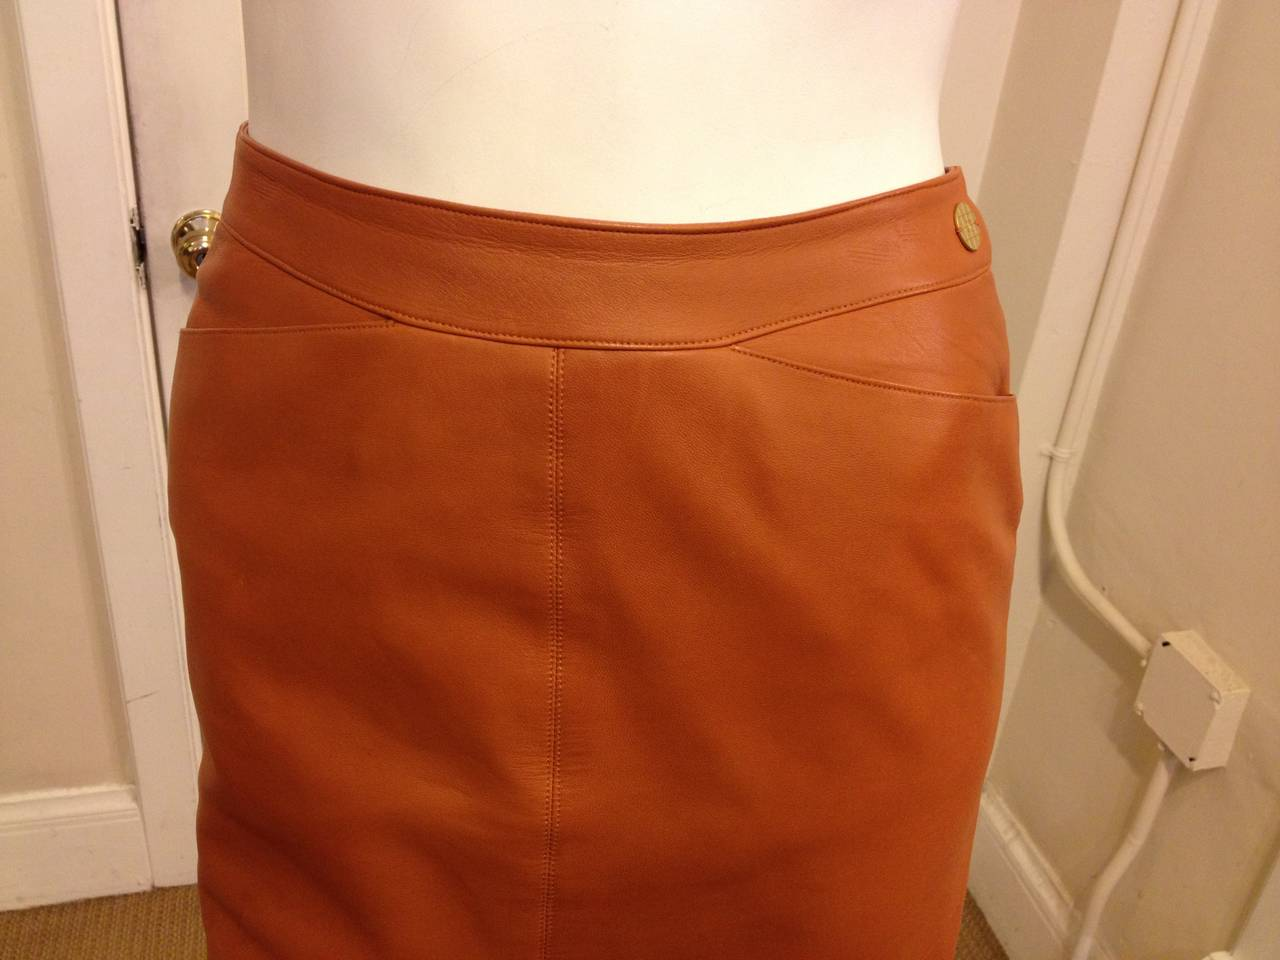 Chanel Caramel Rust Brown Leather Skirt 3